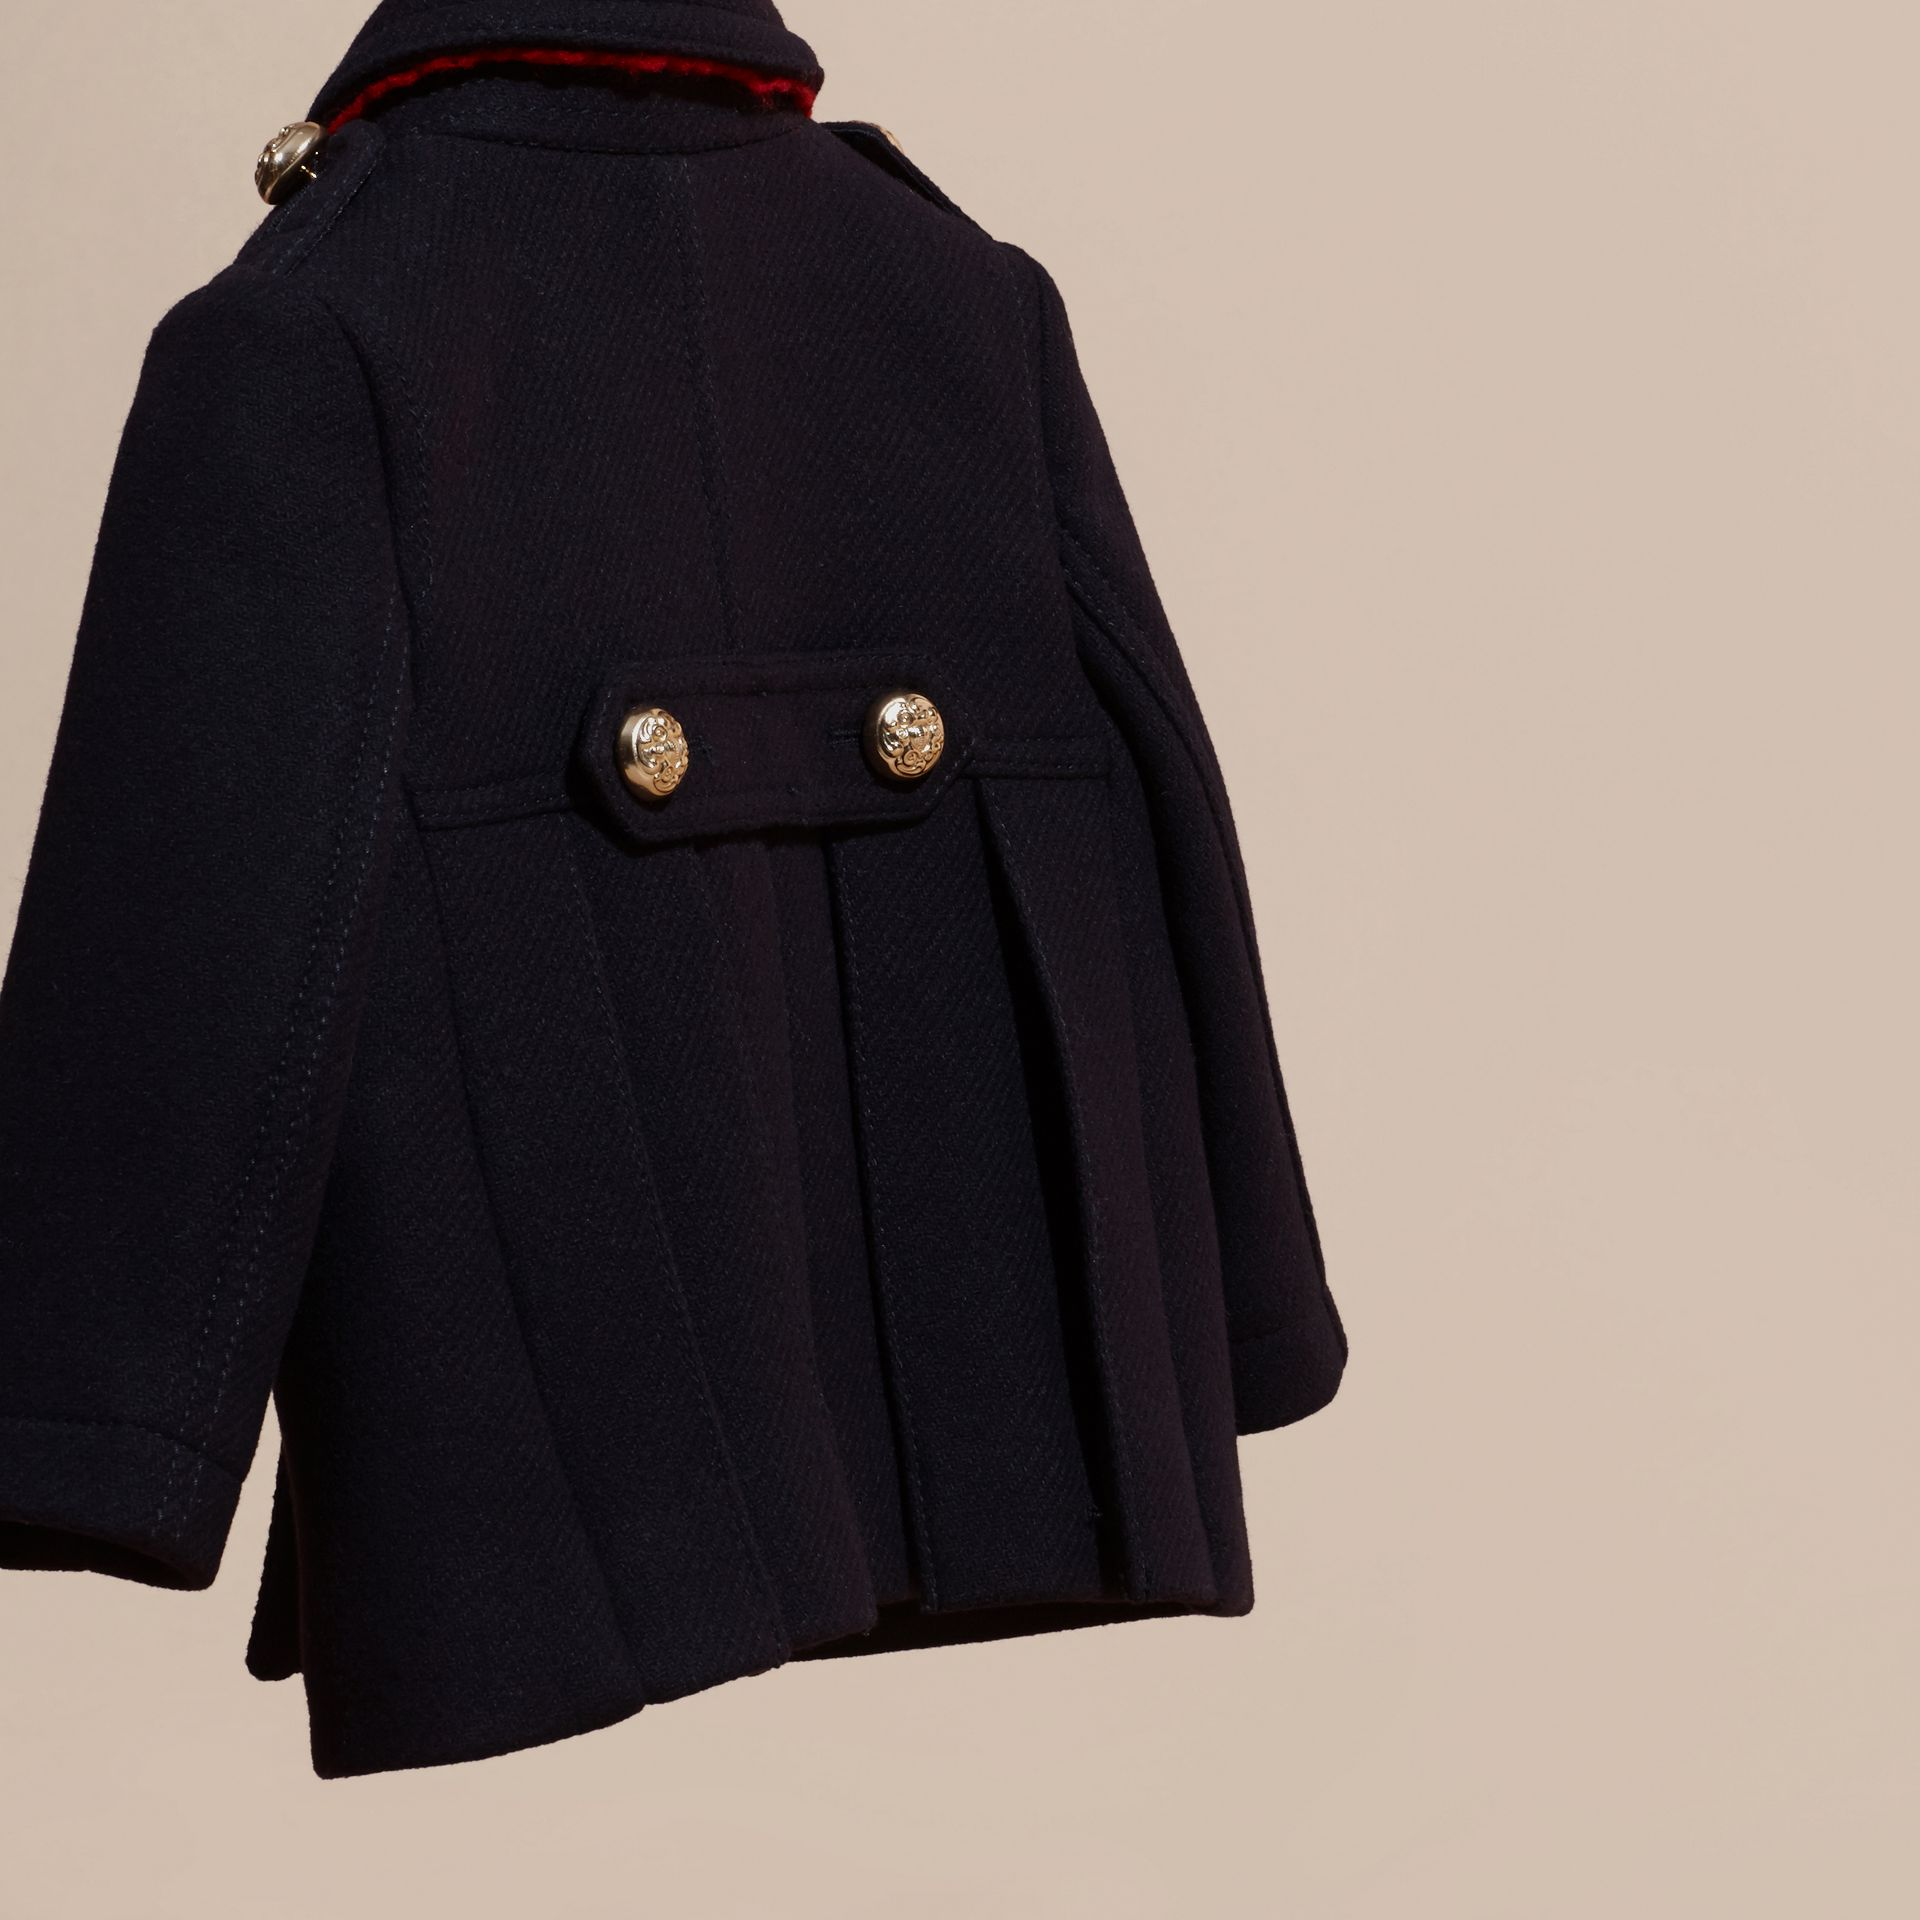 Navy Wool Cashmere Blend Pleat Detail Military Pea Coat - gallery image 4